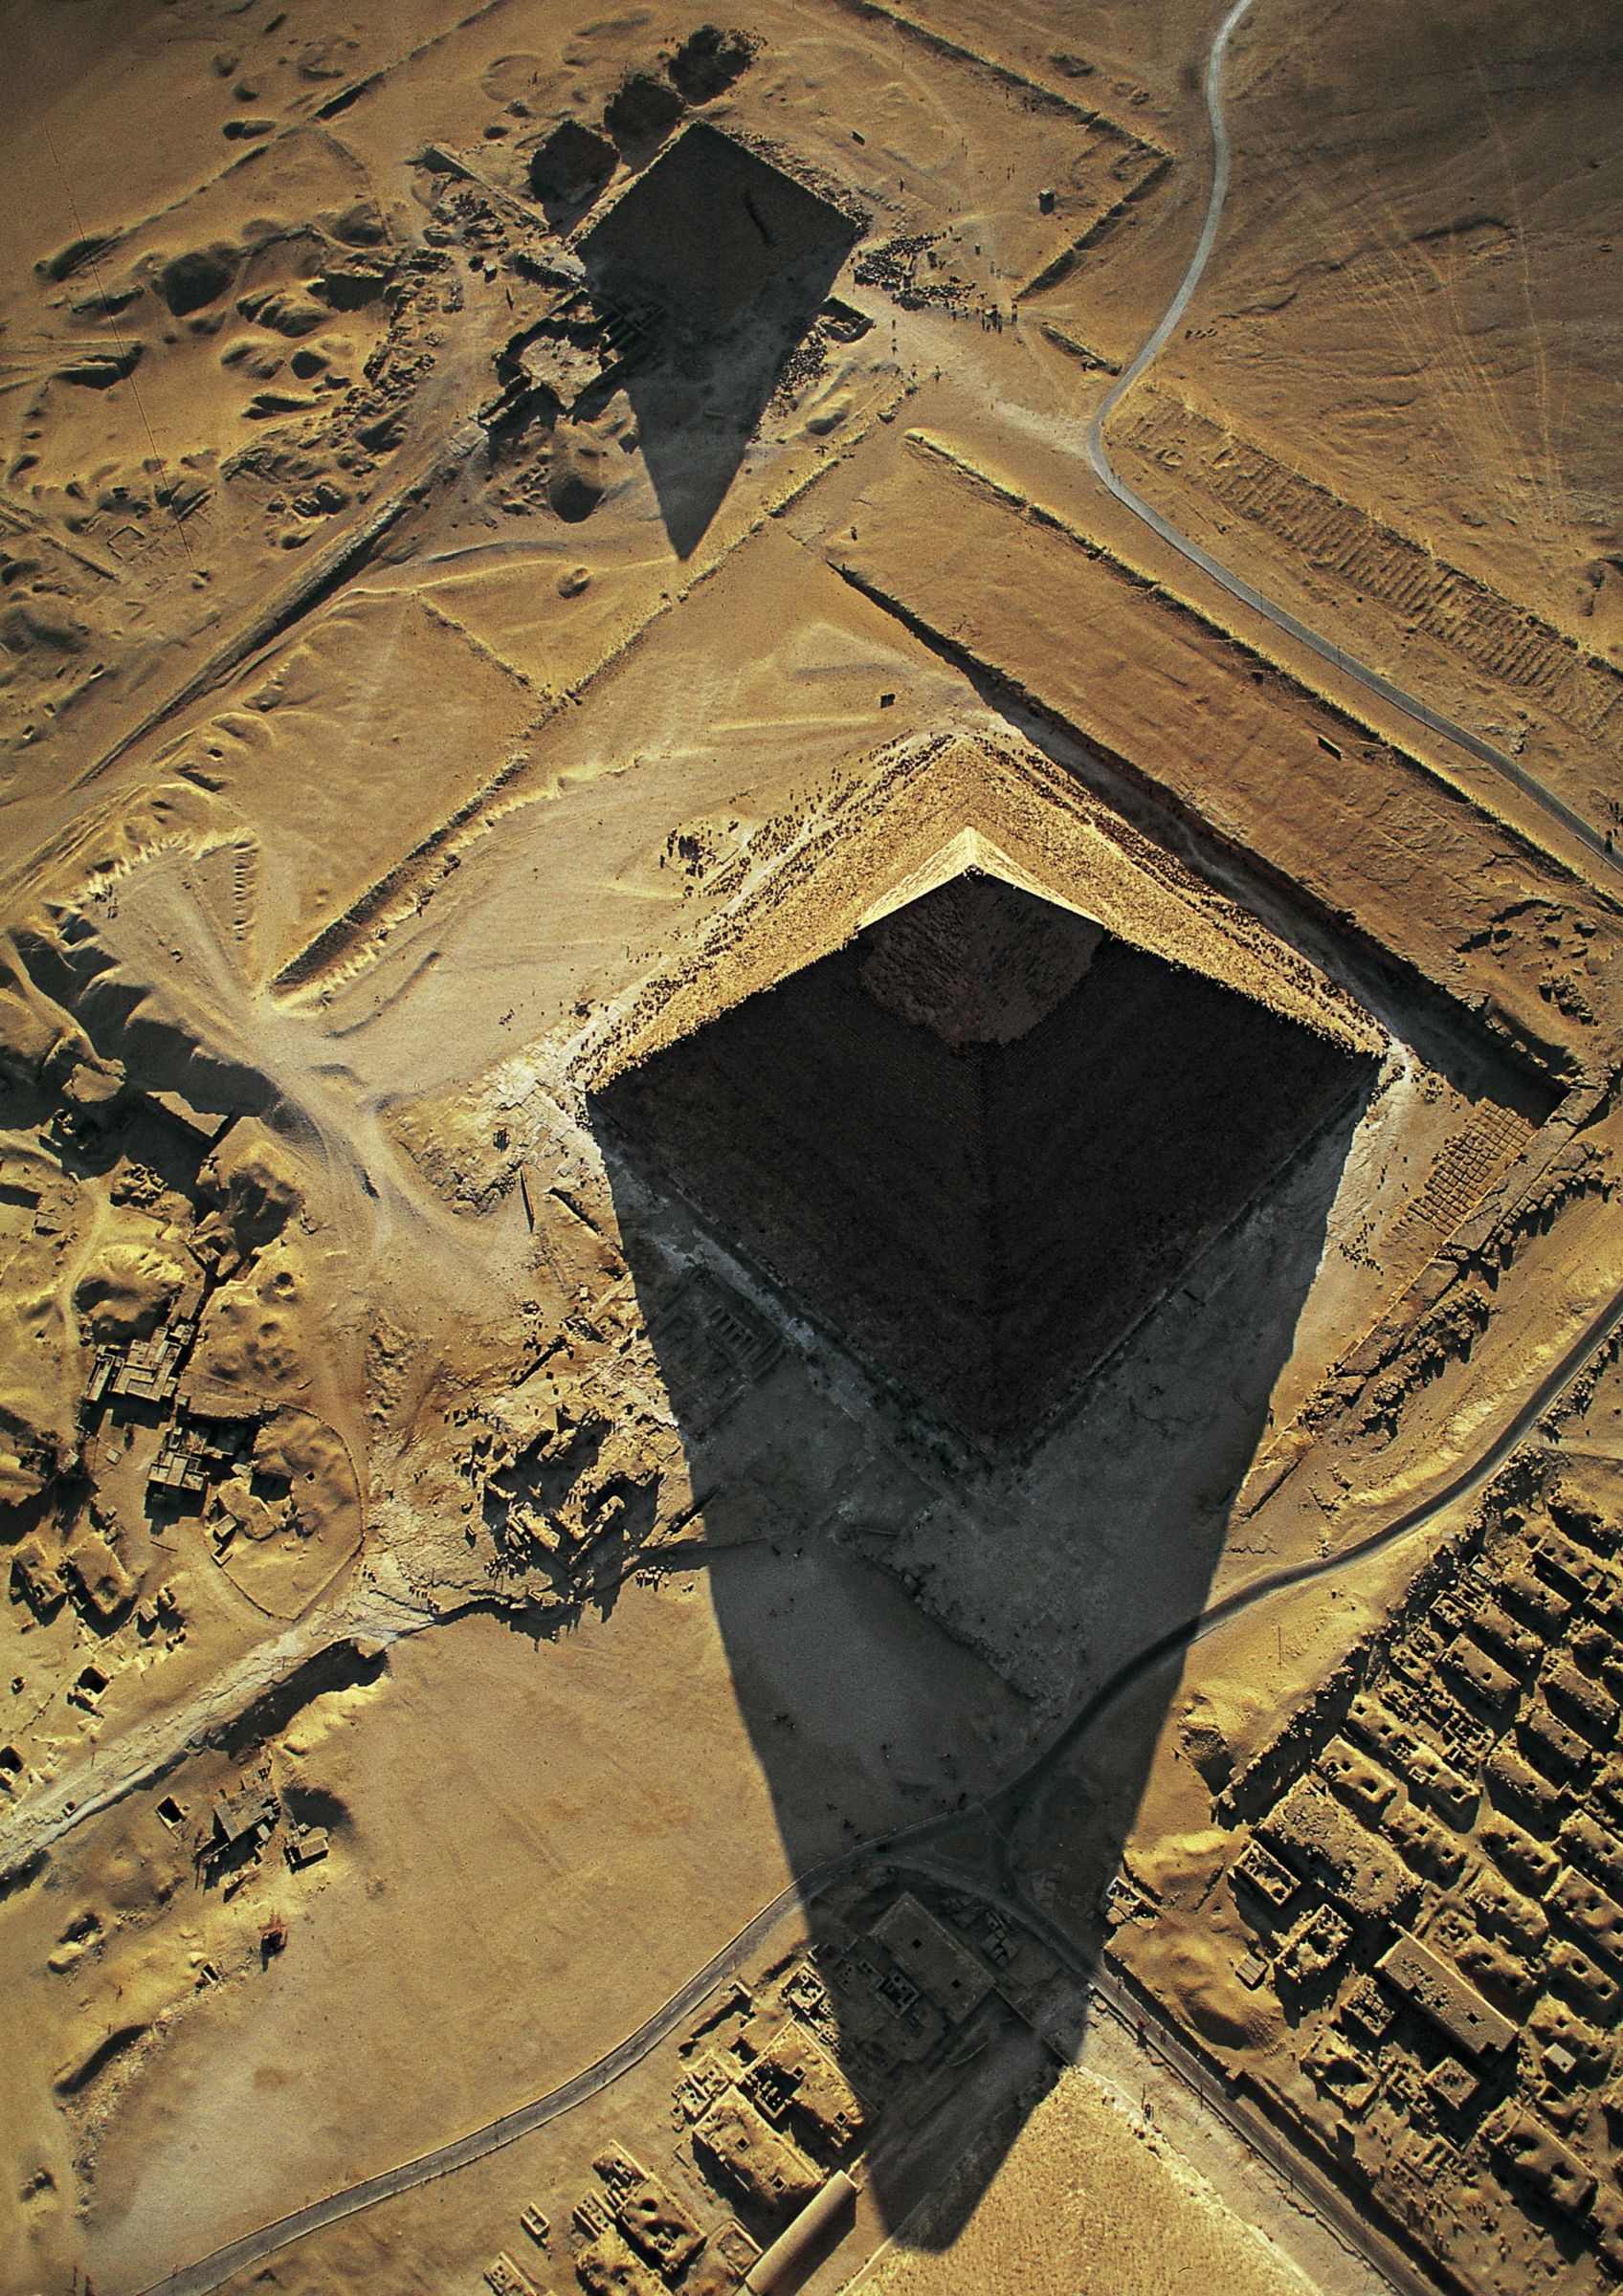 General view/misc.: Site: Giza; View: Khafre pyramid, Menkaure pyramid